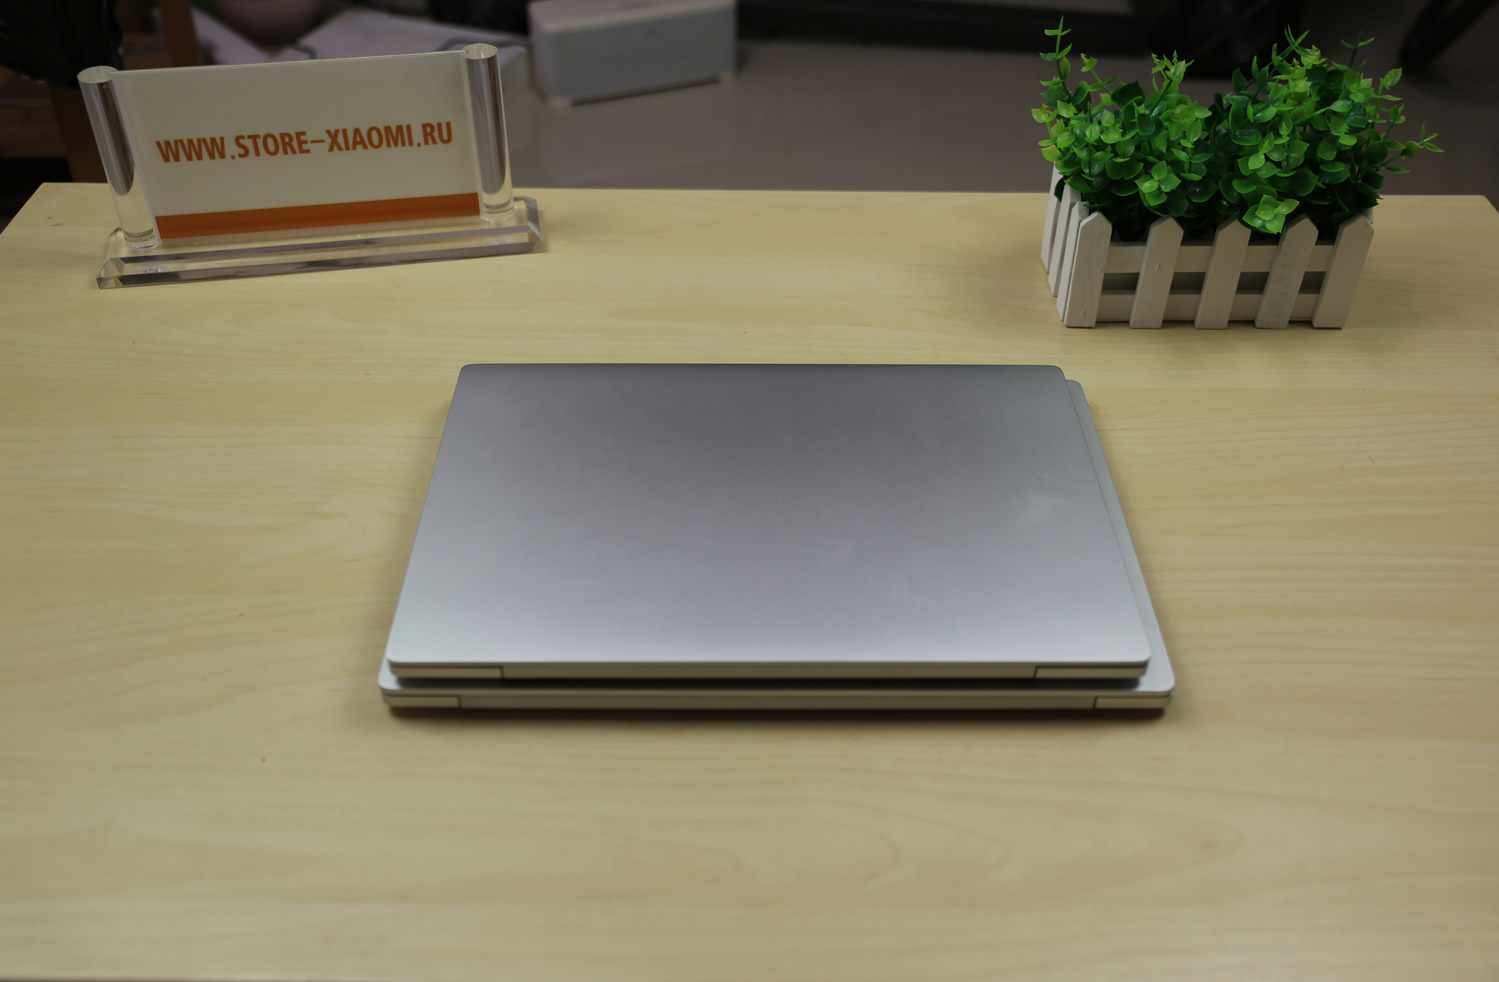 xiaomi-notebook-sravnen-4